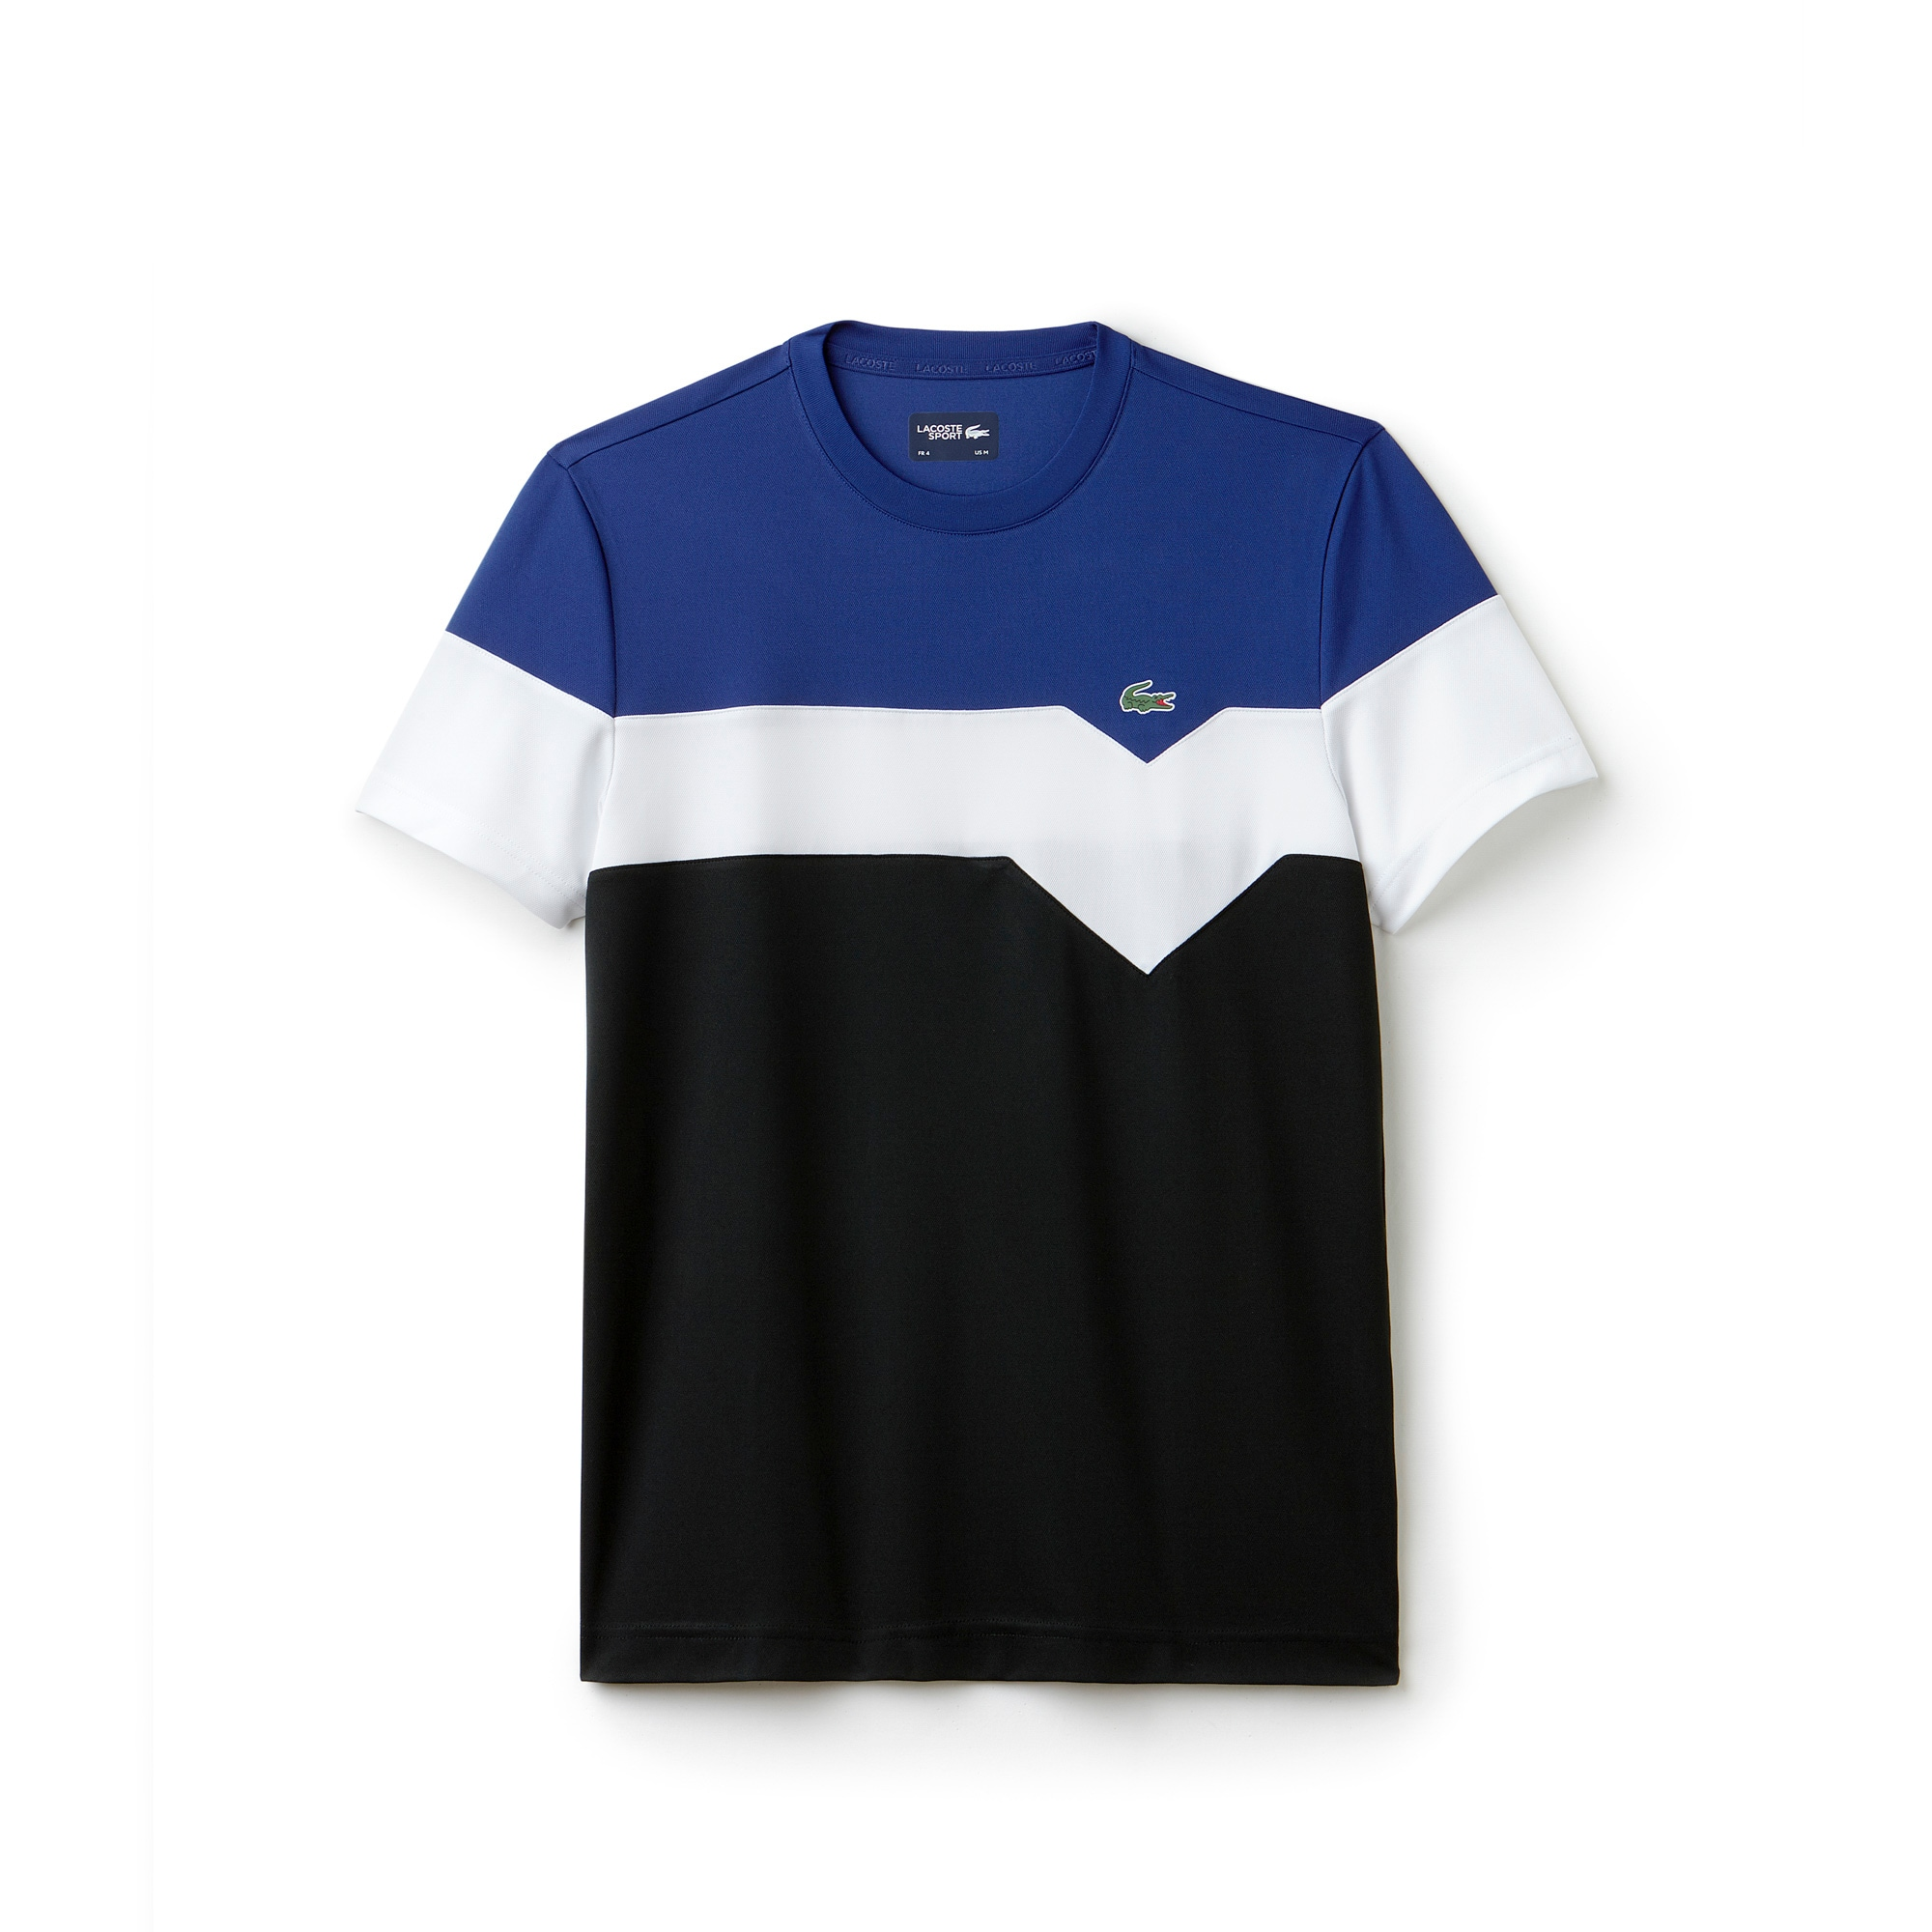 Men's Lacoste SPORT Tennis Colorblock Technical Piqué T-shirt